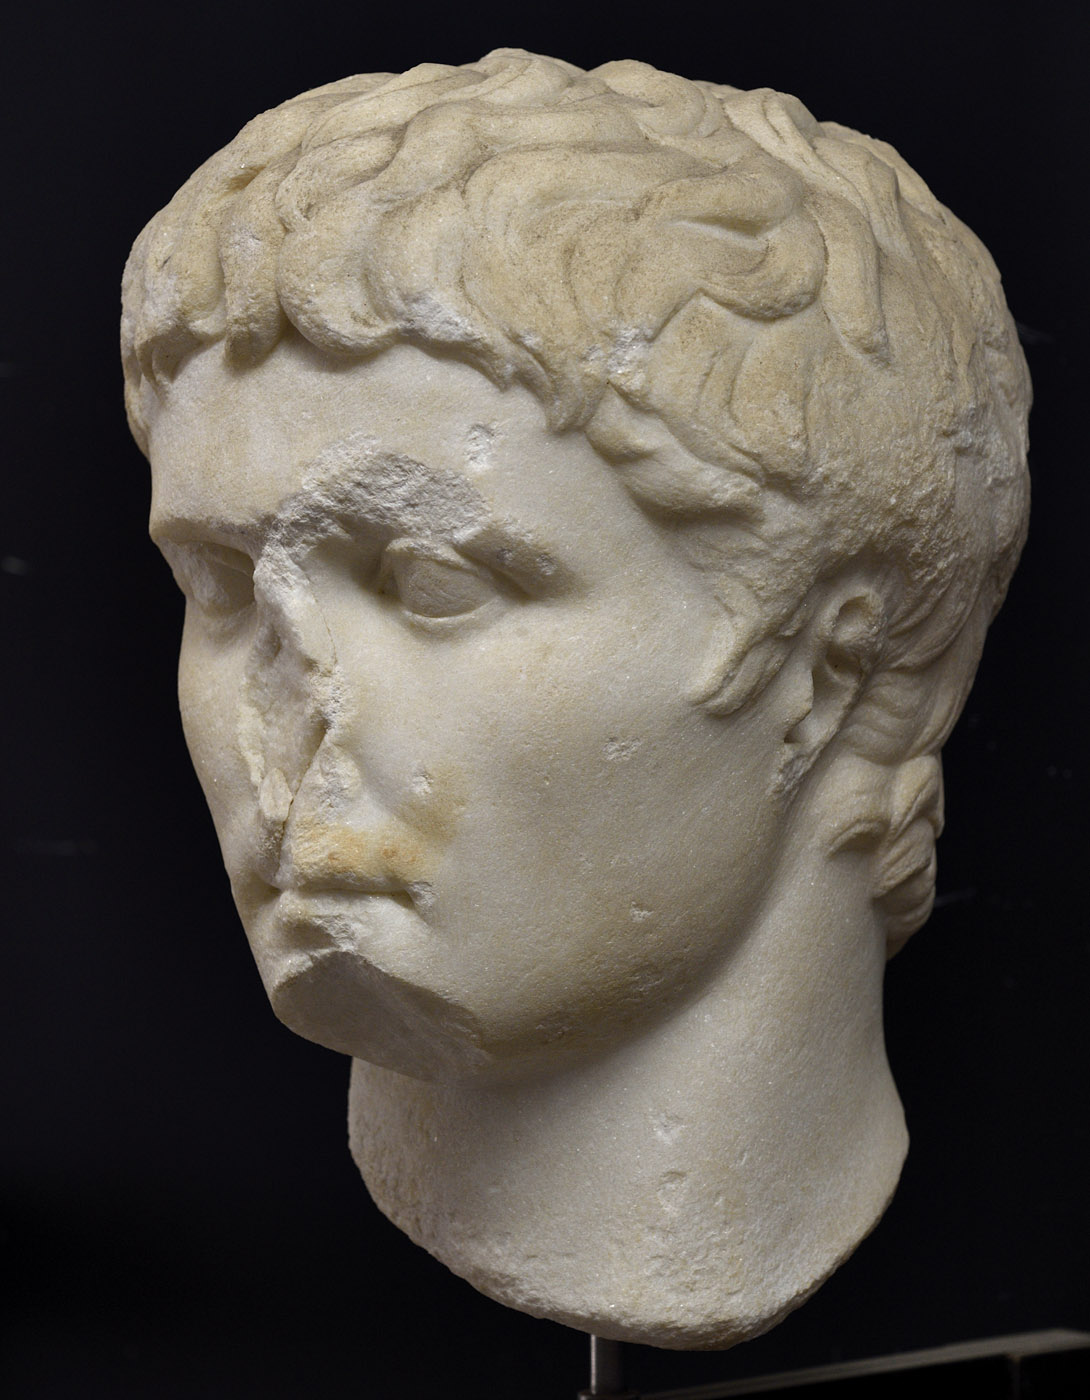 Head of Augustus. Medium/fine grained white parian marble. First half of the 1st century CE. Baia, Archaeological Museum of the Phlegraean Fields